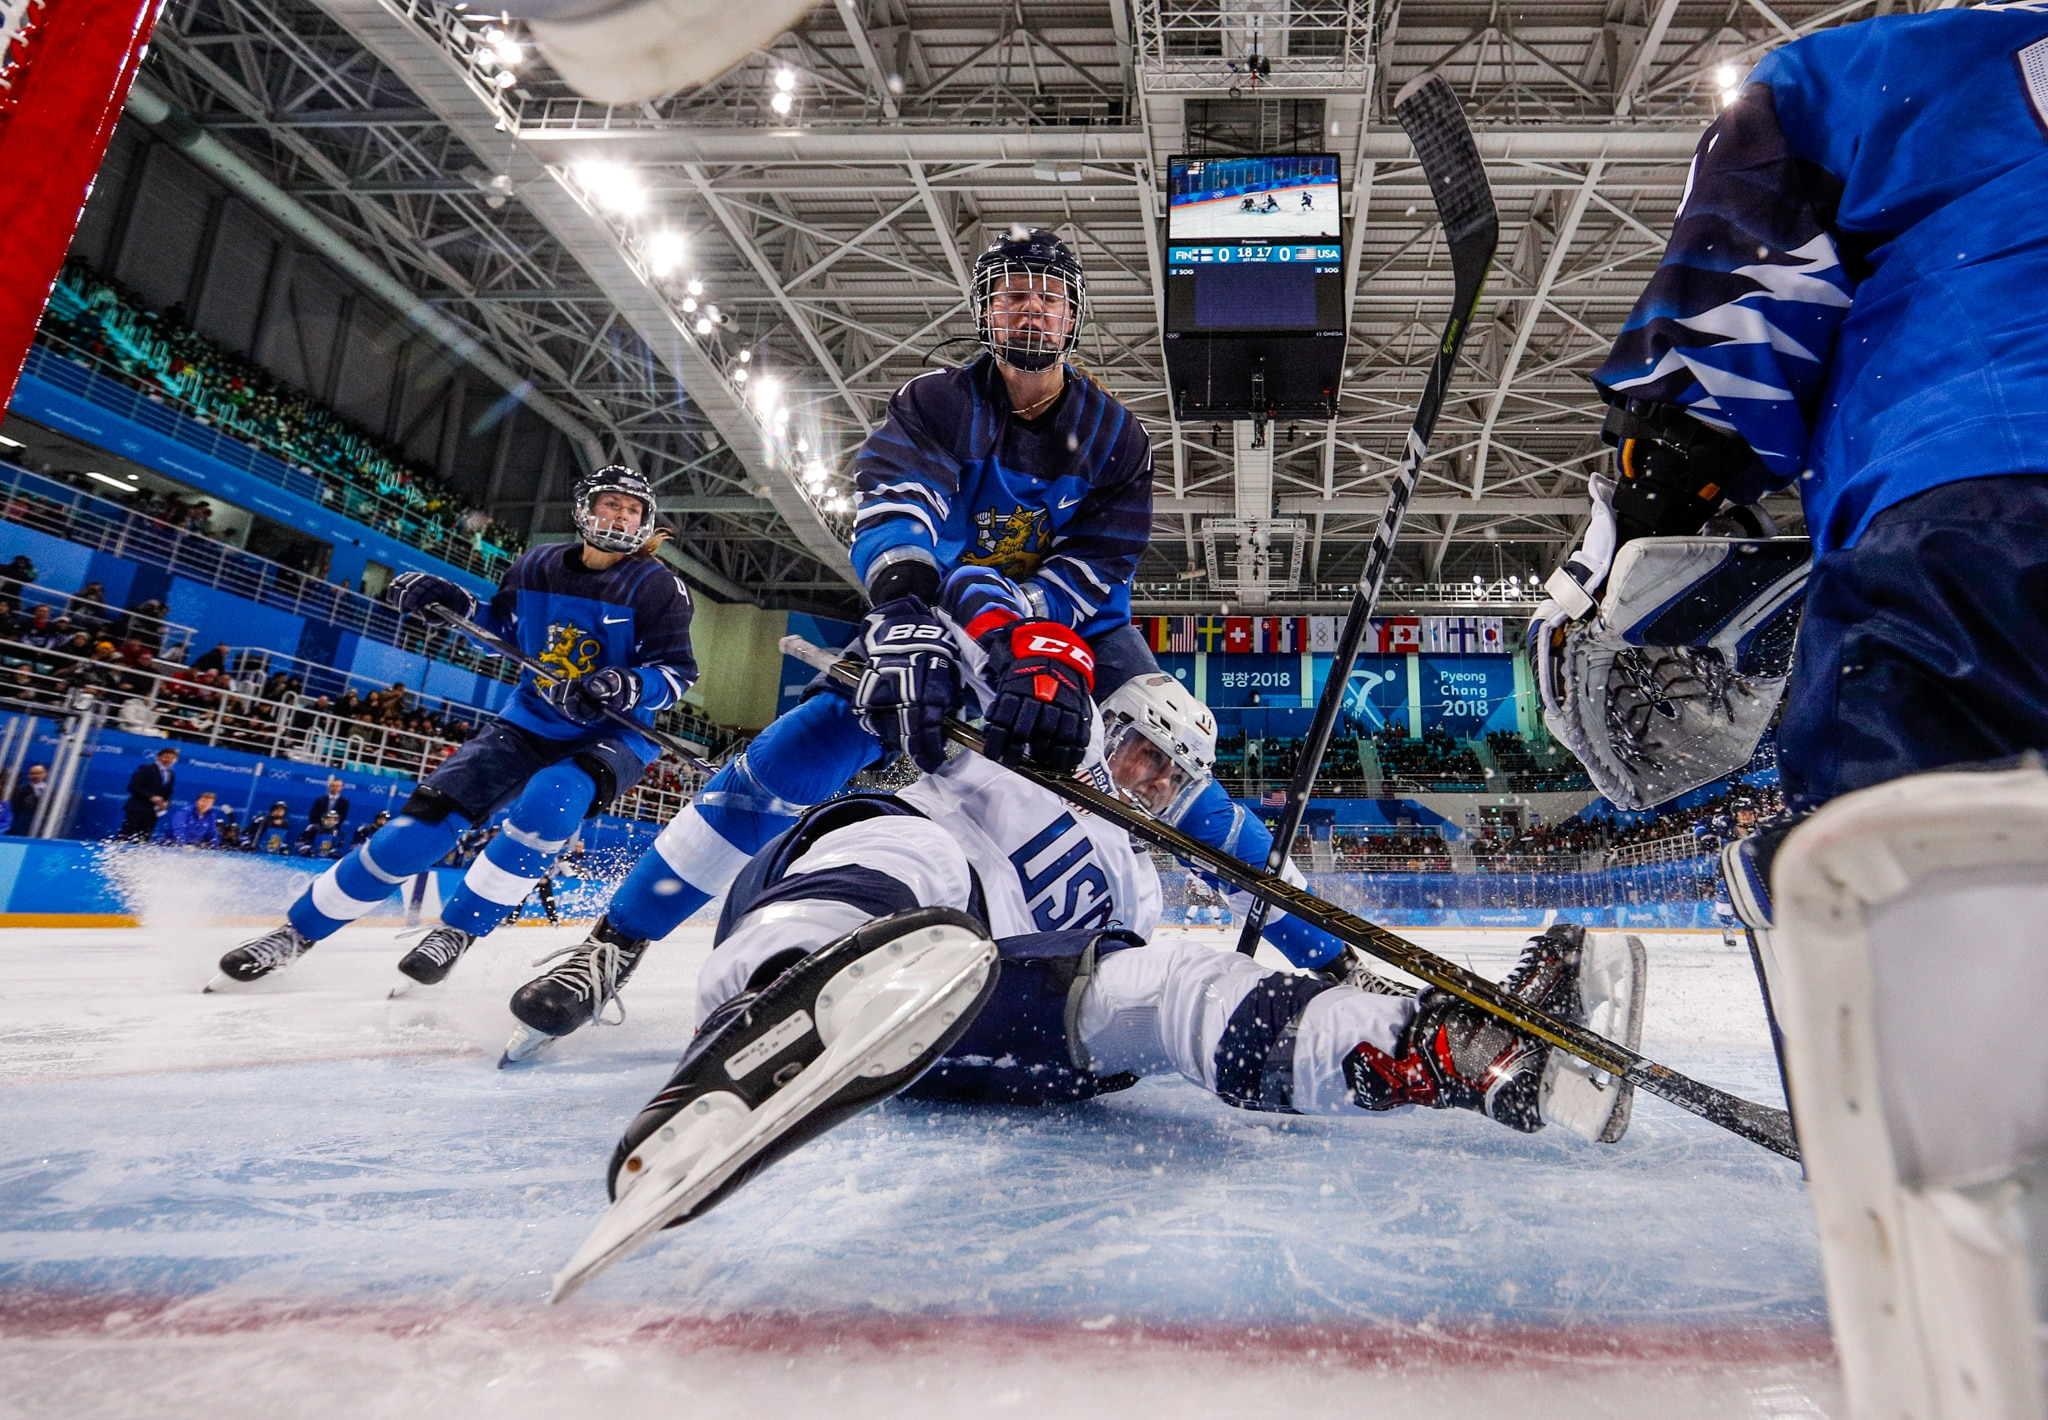 Jugadores de hockey chocando (© Grigory Dukor/AP Images)